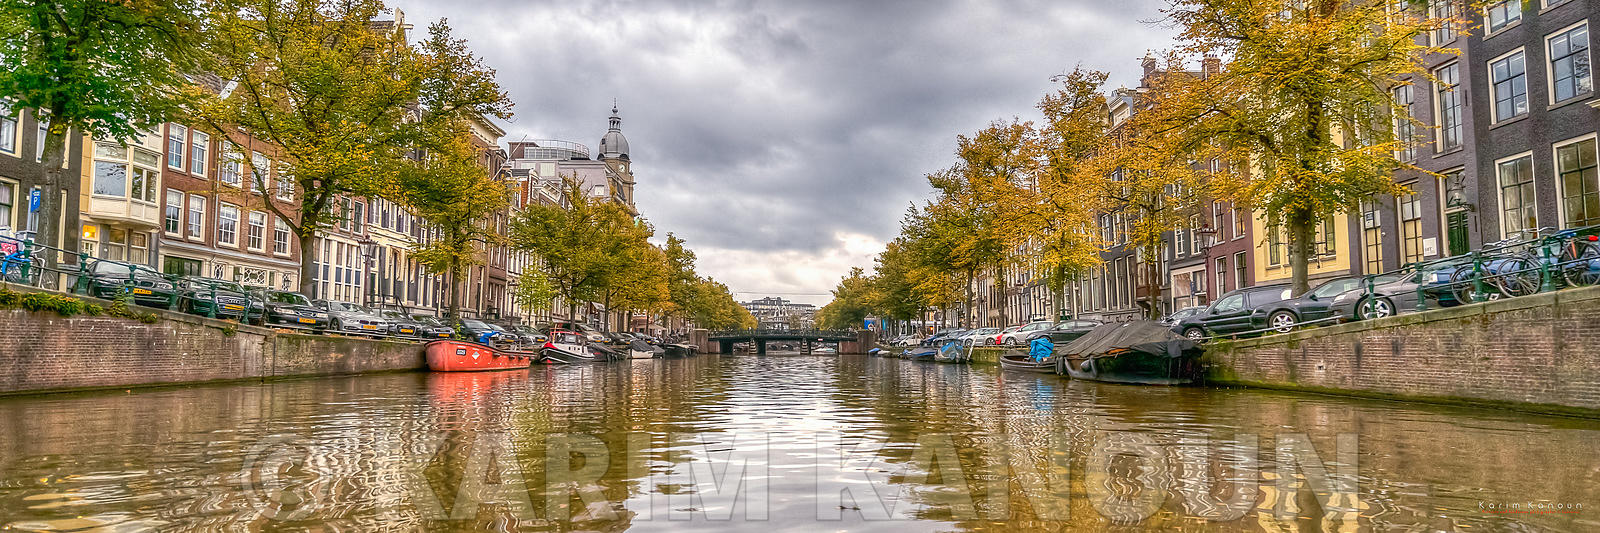 Panorama - Amsterdam river canal from a boat cruise on a rainy day